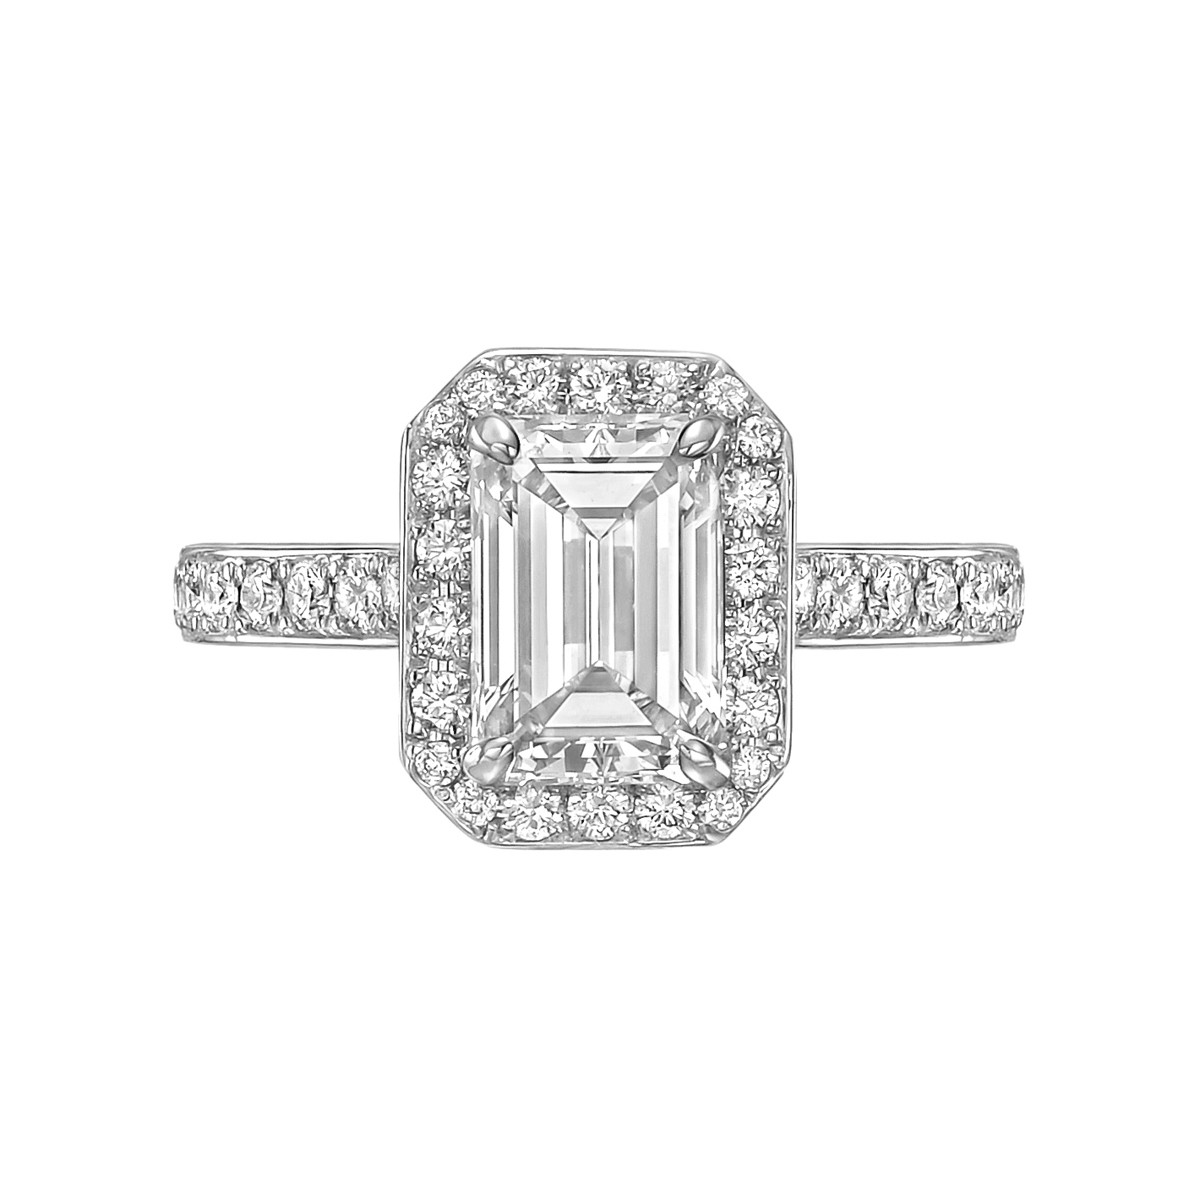 1.69 Carat Emerald-Cut Diamond Ring